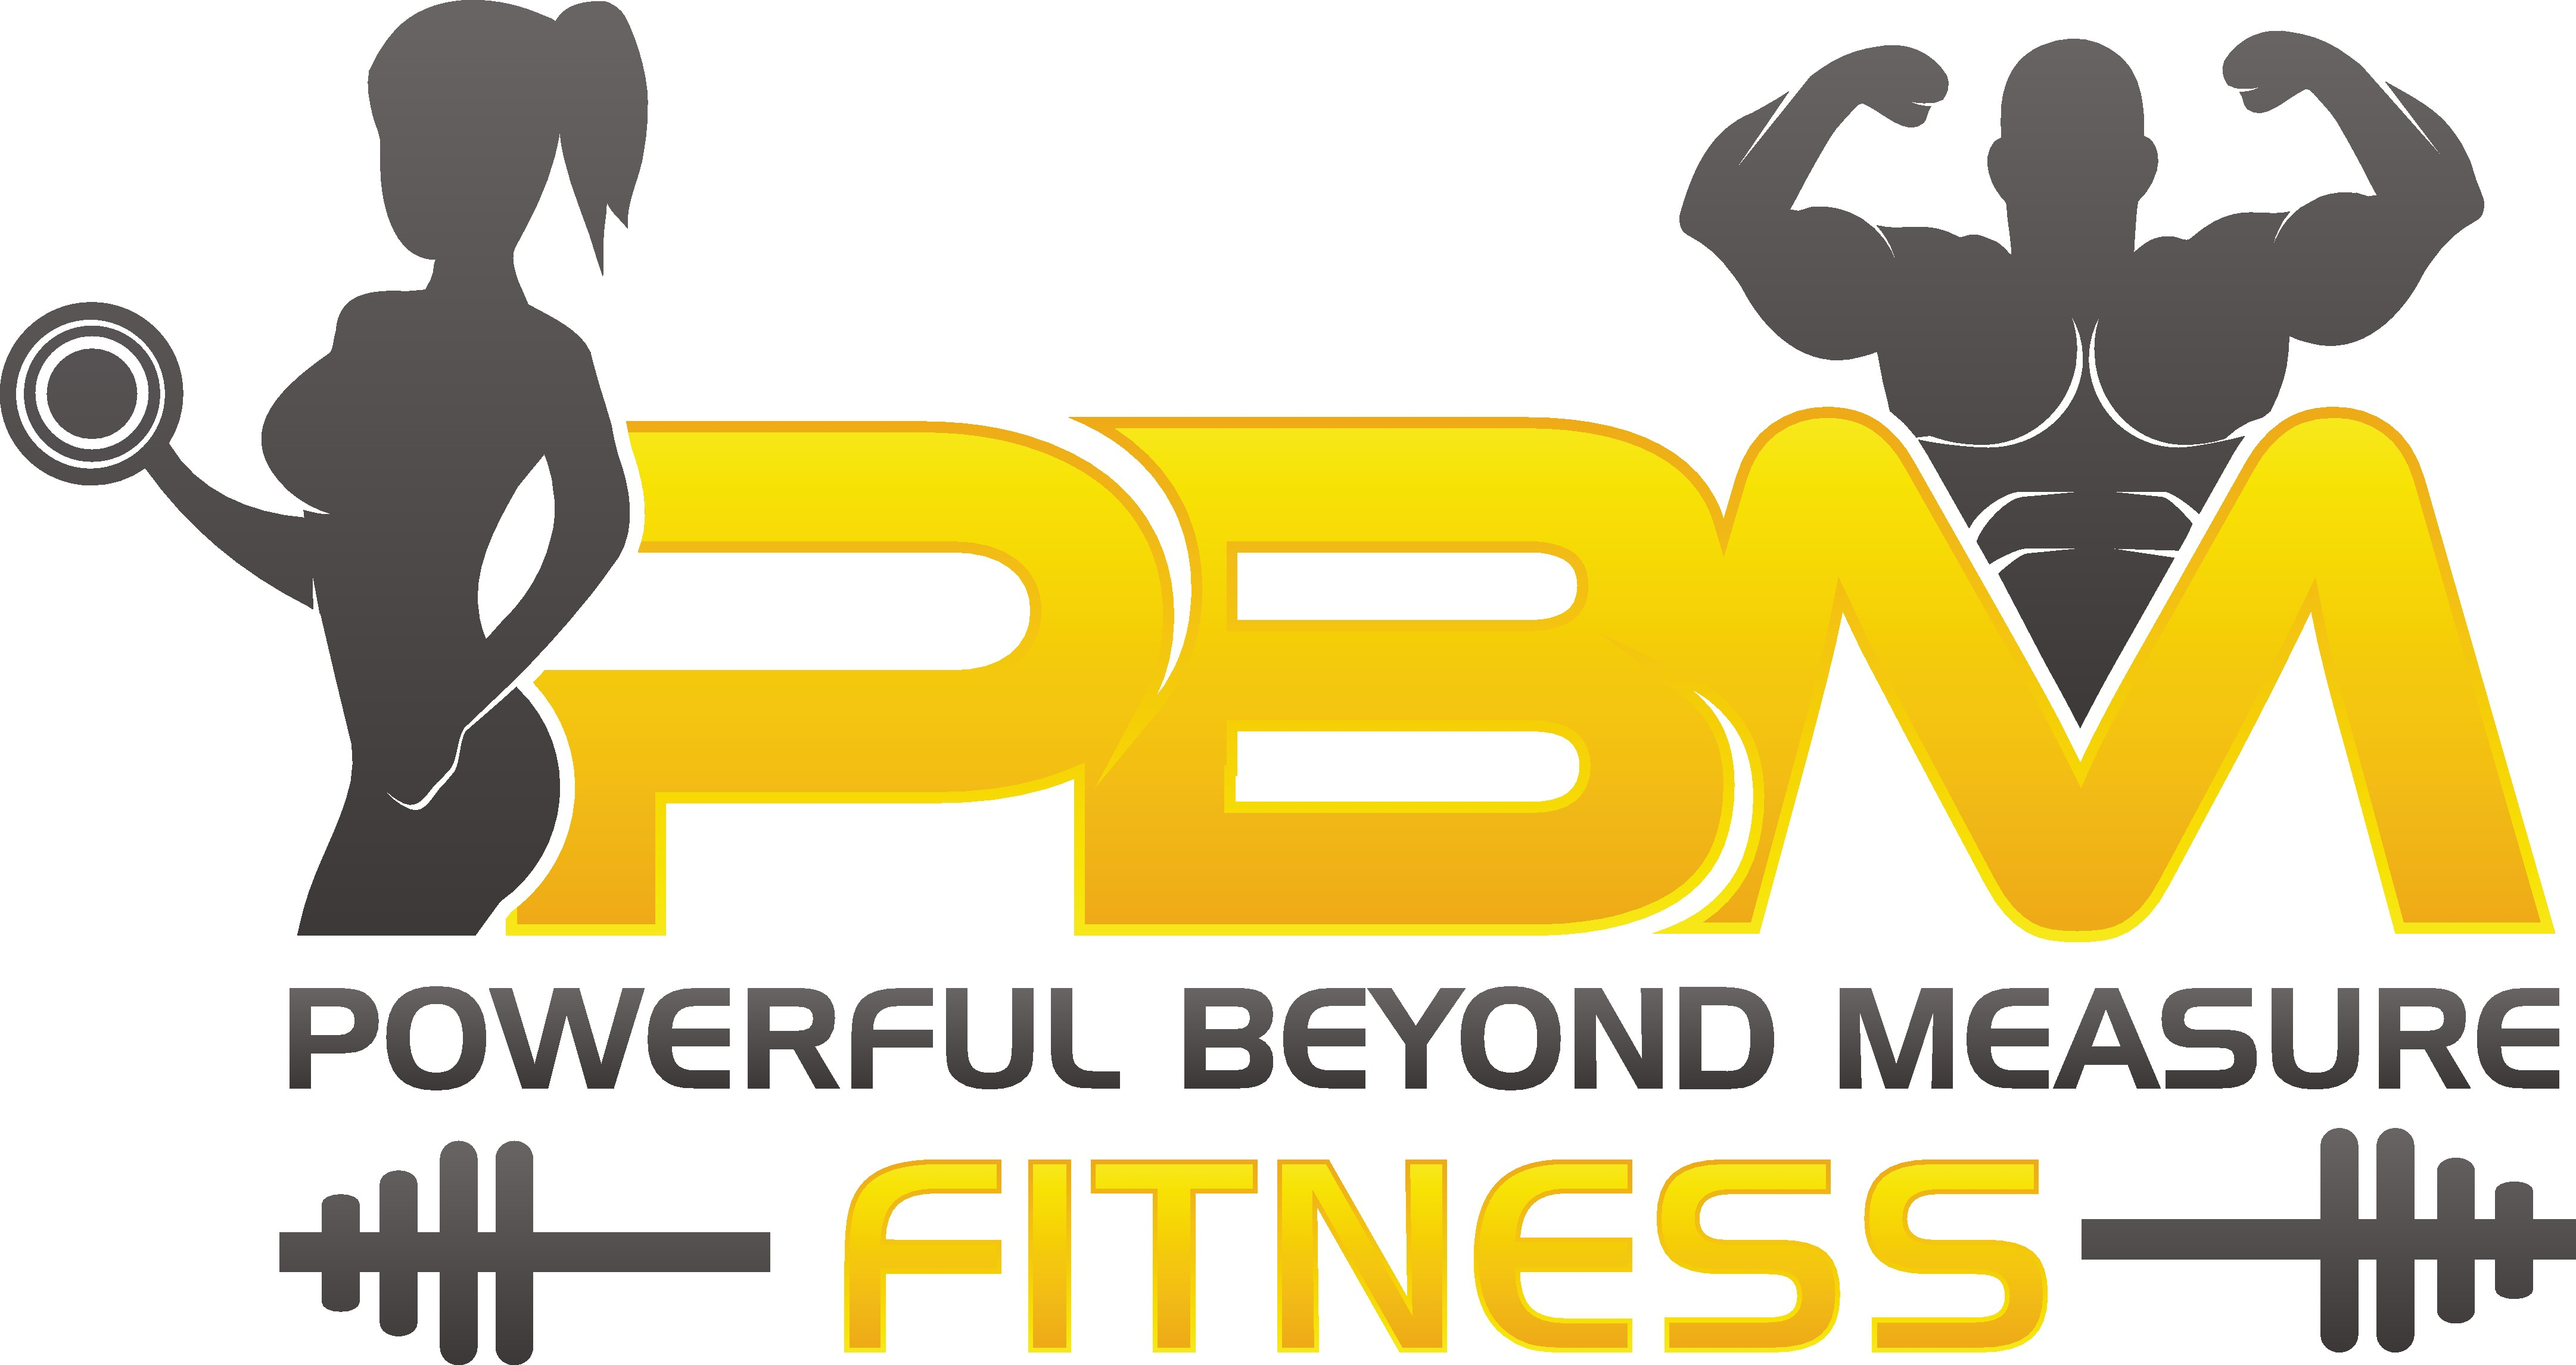 Create a bold and imaginative design for Powerful beyond measure fitness